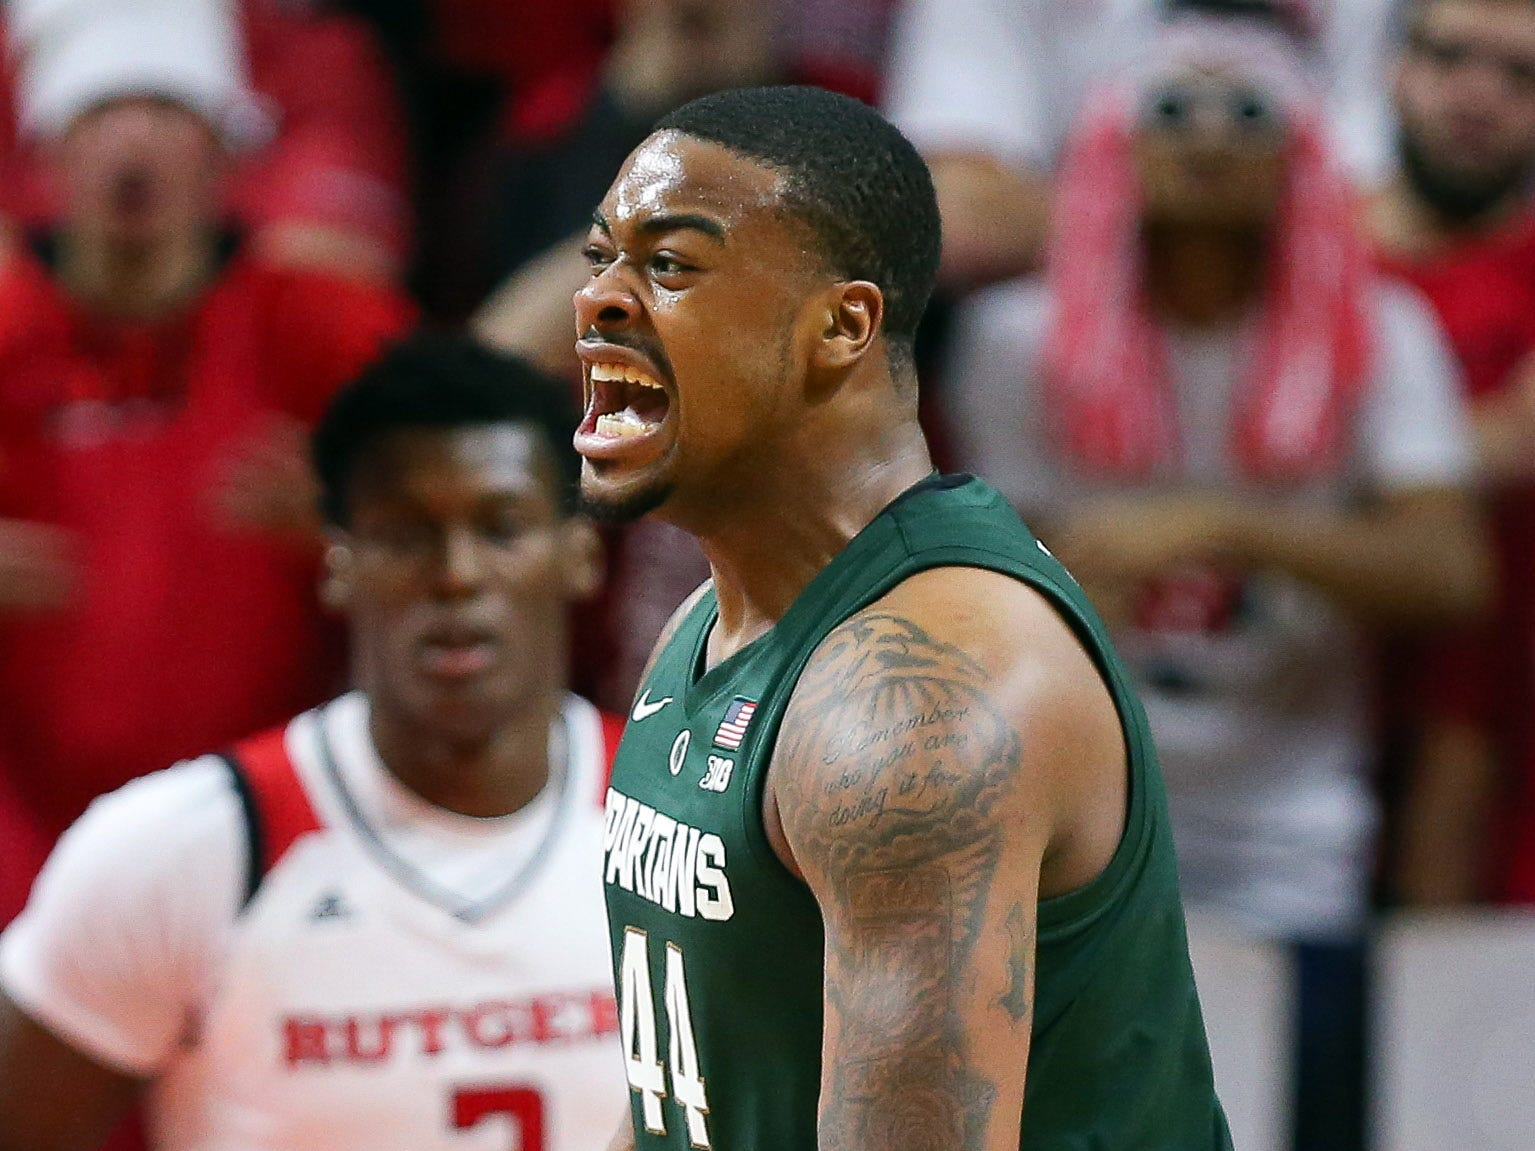 Michigan State Spartans forward Nick Ward (44) celebrates a basket in front of Rutgers Scarlet Knights center Shaquille Doorson (2) during the second half at Rutgers Athletic Center (RAC).